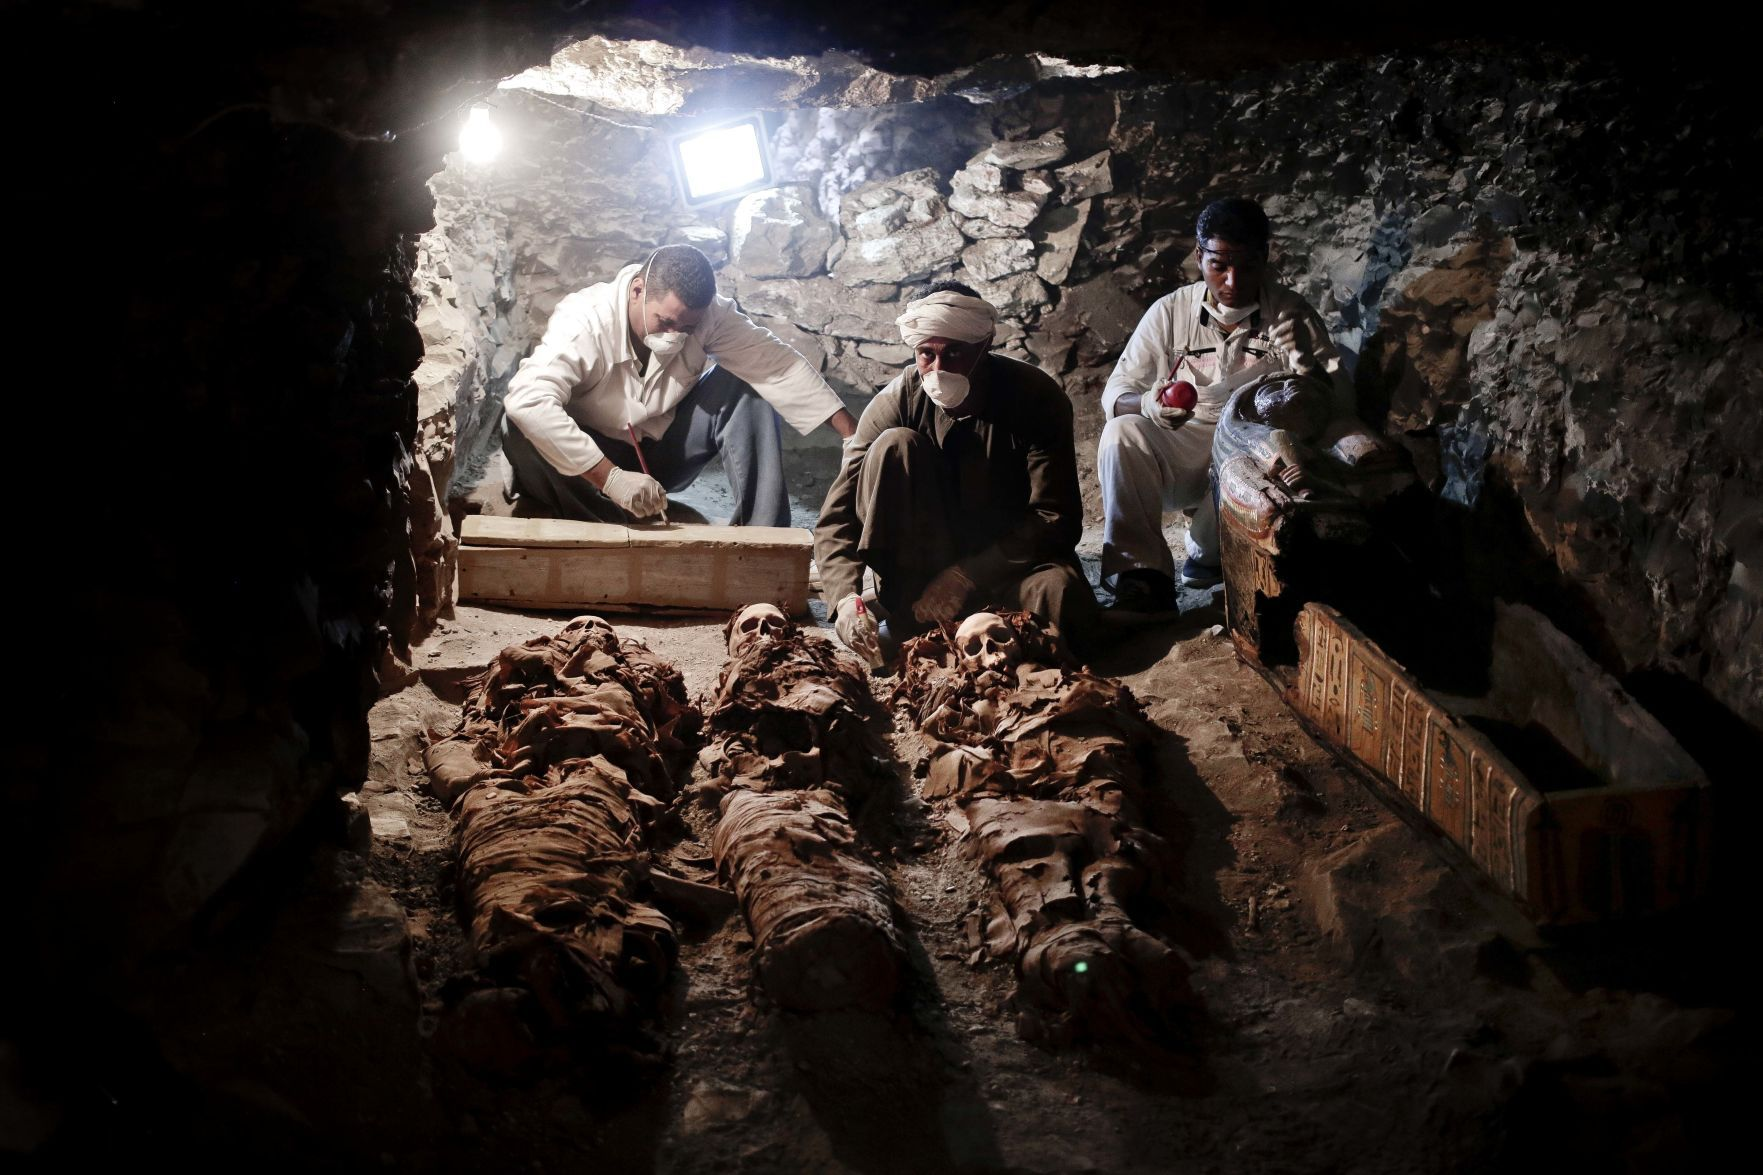 Egypt uncovers 3500-year-old tomb of royal goldsmith in Luxor